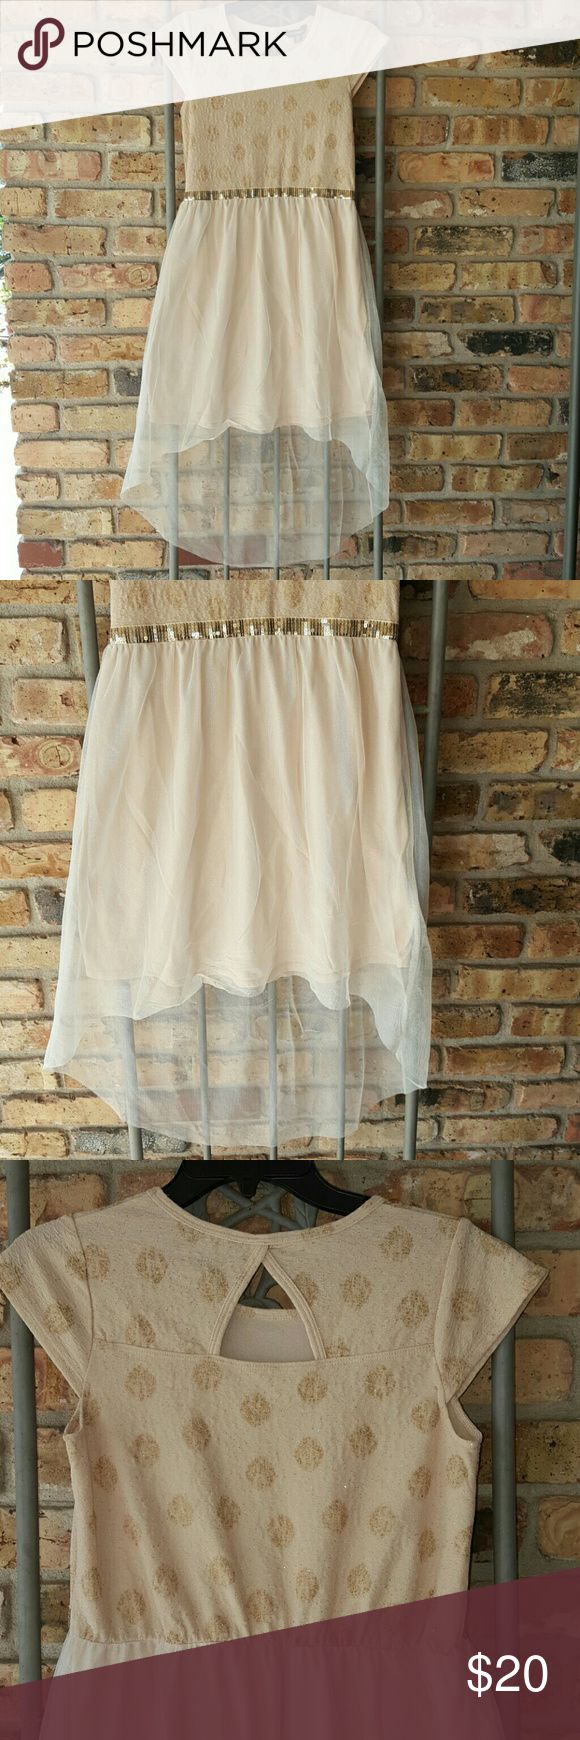 George dress Sparkly gold dress top with gold sequence waist. High/low scooped back sheer skirt with solid cream colored skirt underneath.  Worn once. George Dresses Formal